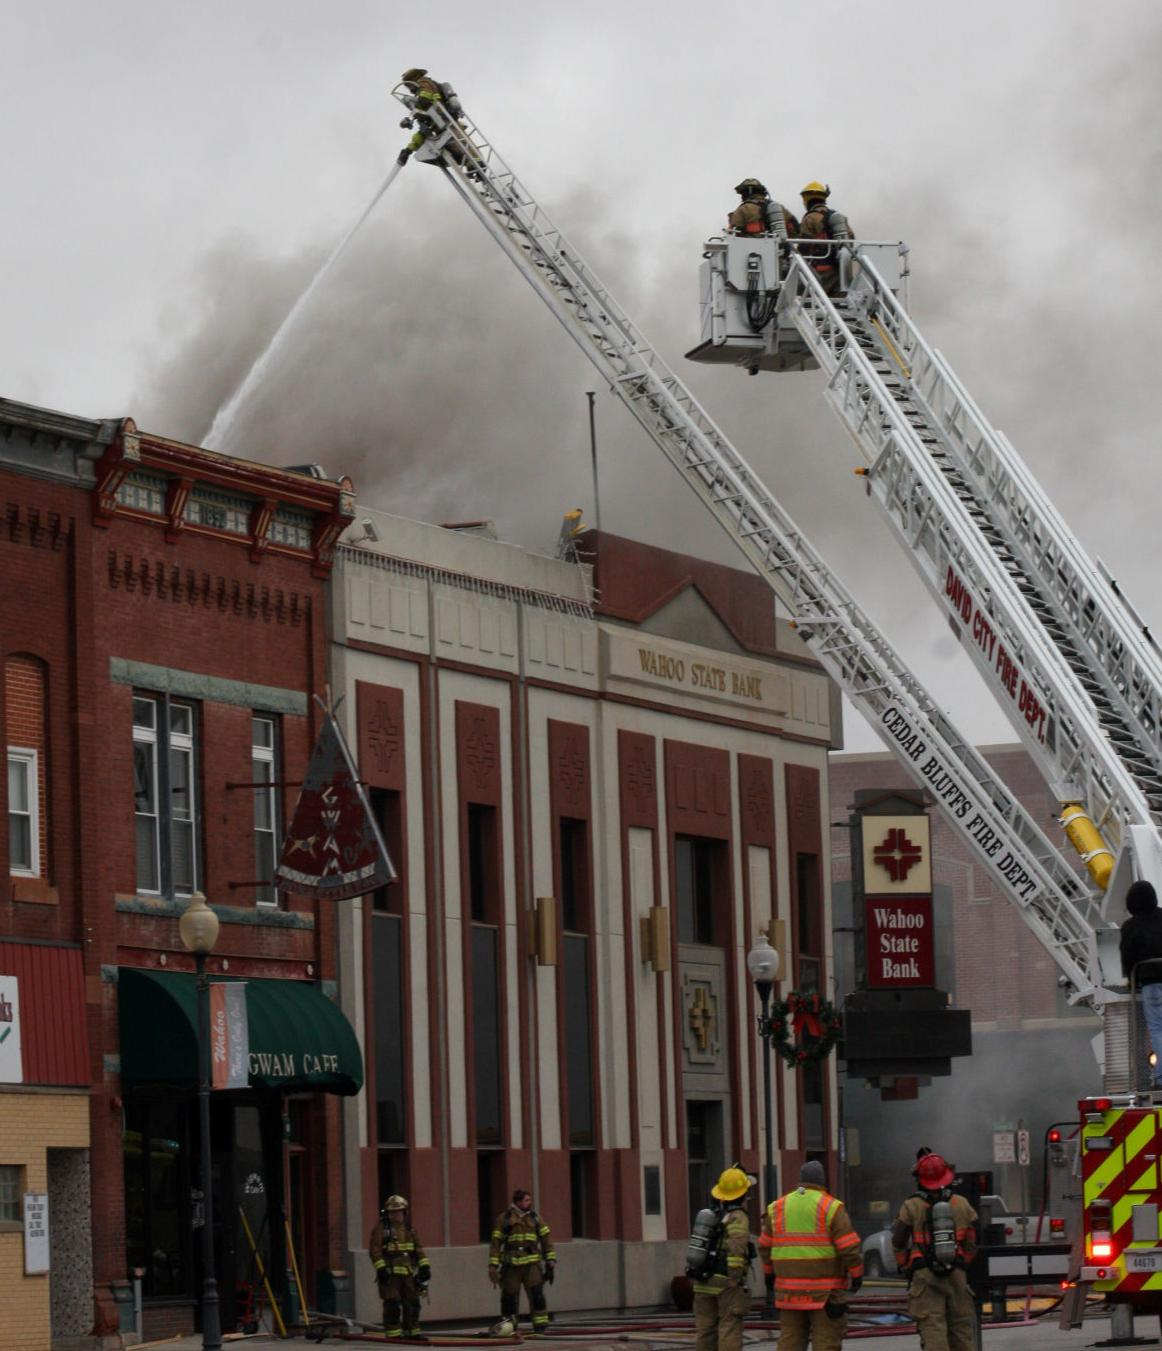 1 year after Wahoo State Bank blaze, new building's design